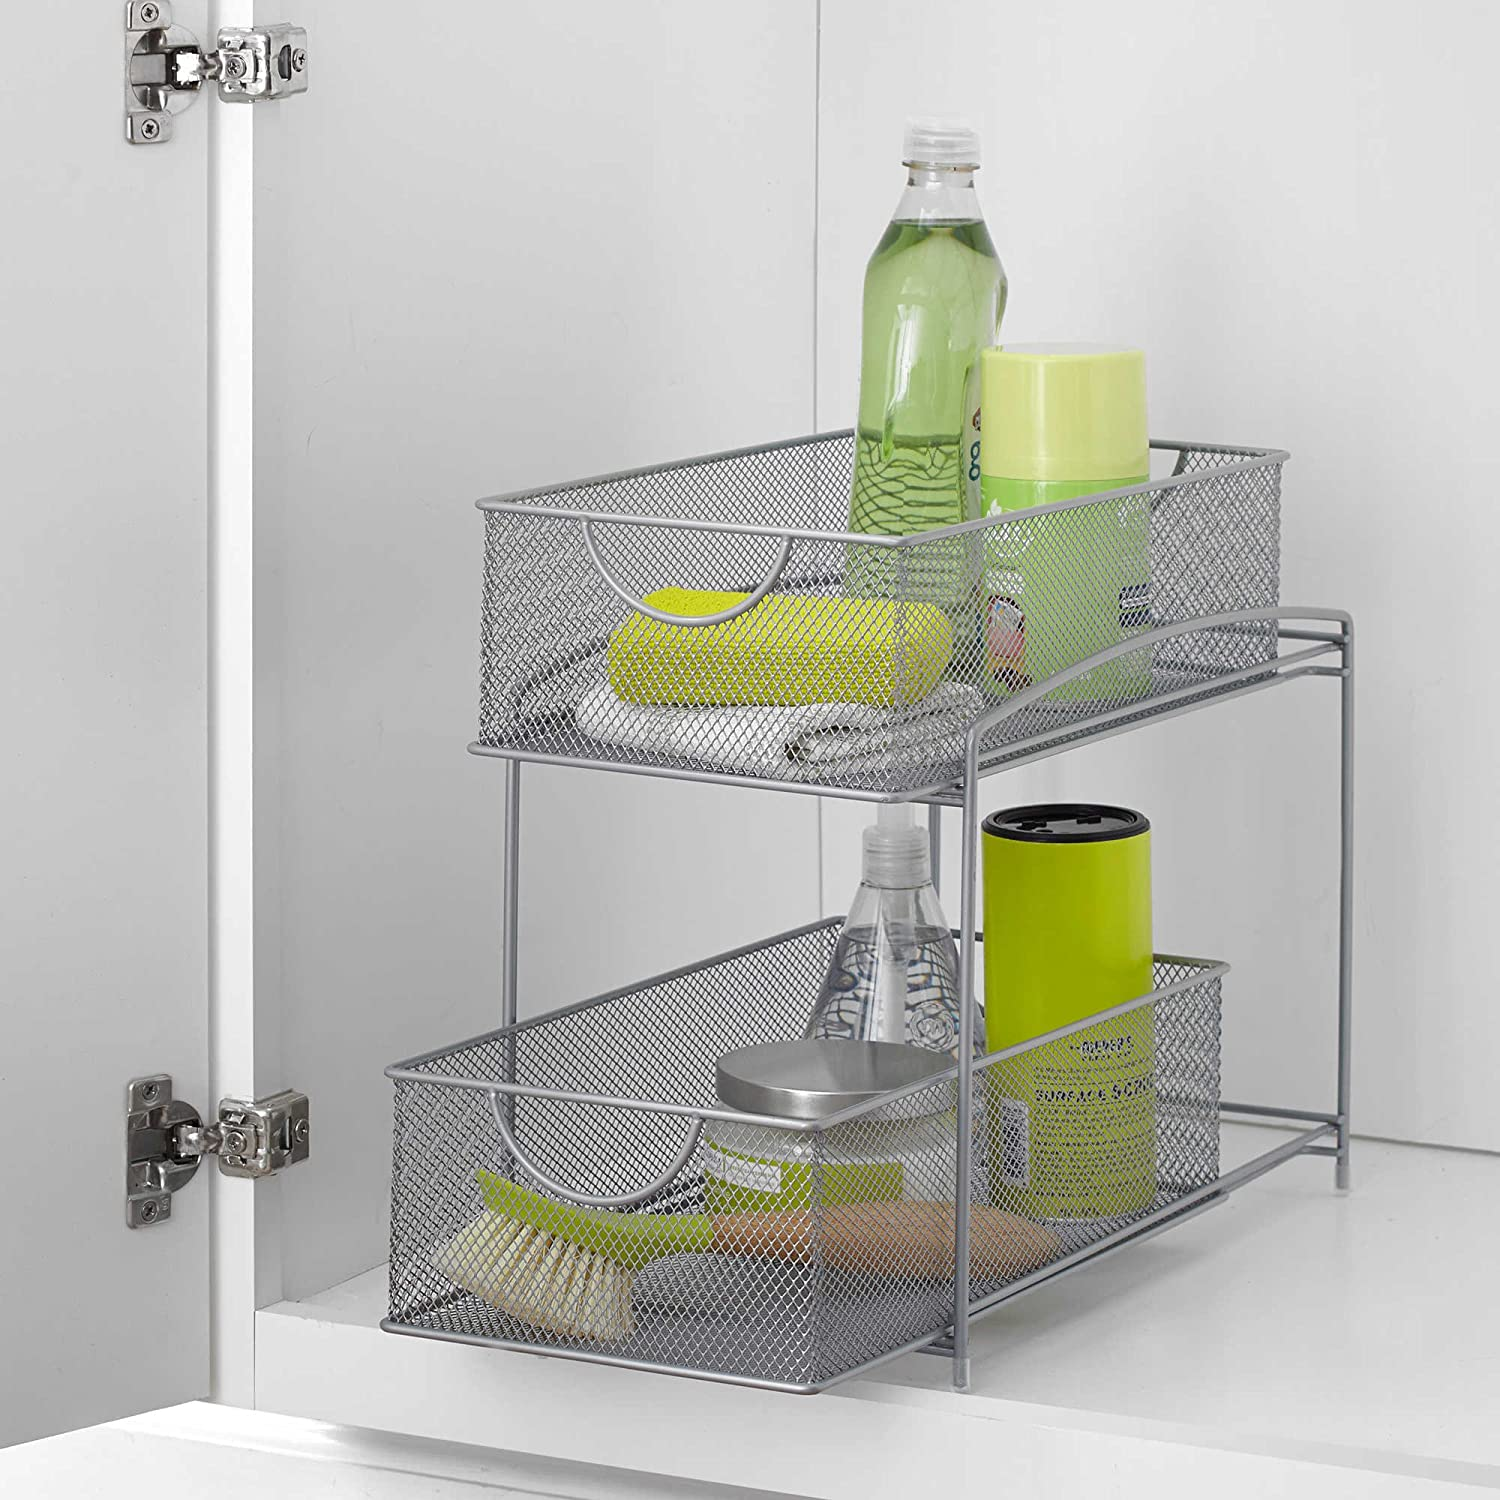 Ordinaire ORG 2 Tier Mesh Double Sliding Cabinet Basket In Silver